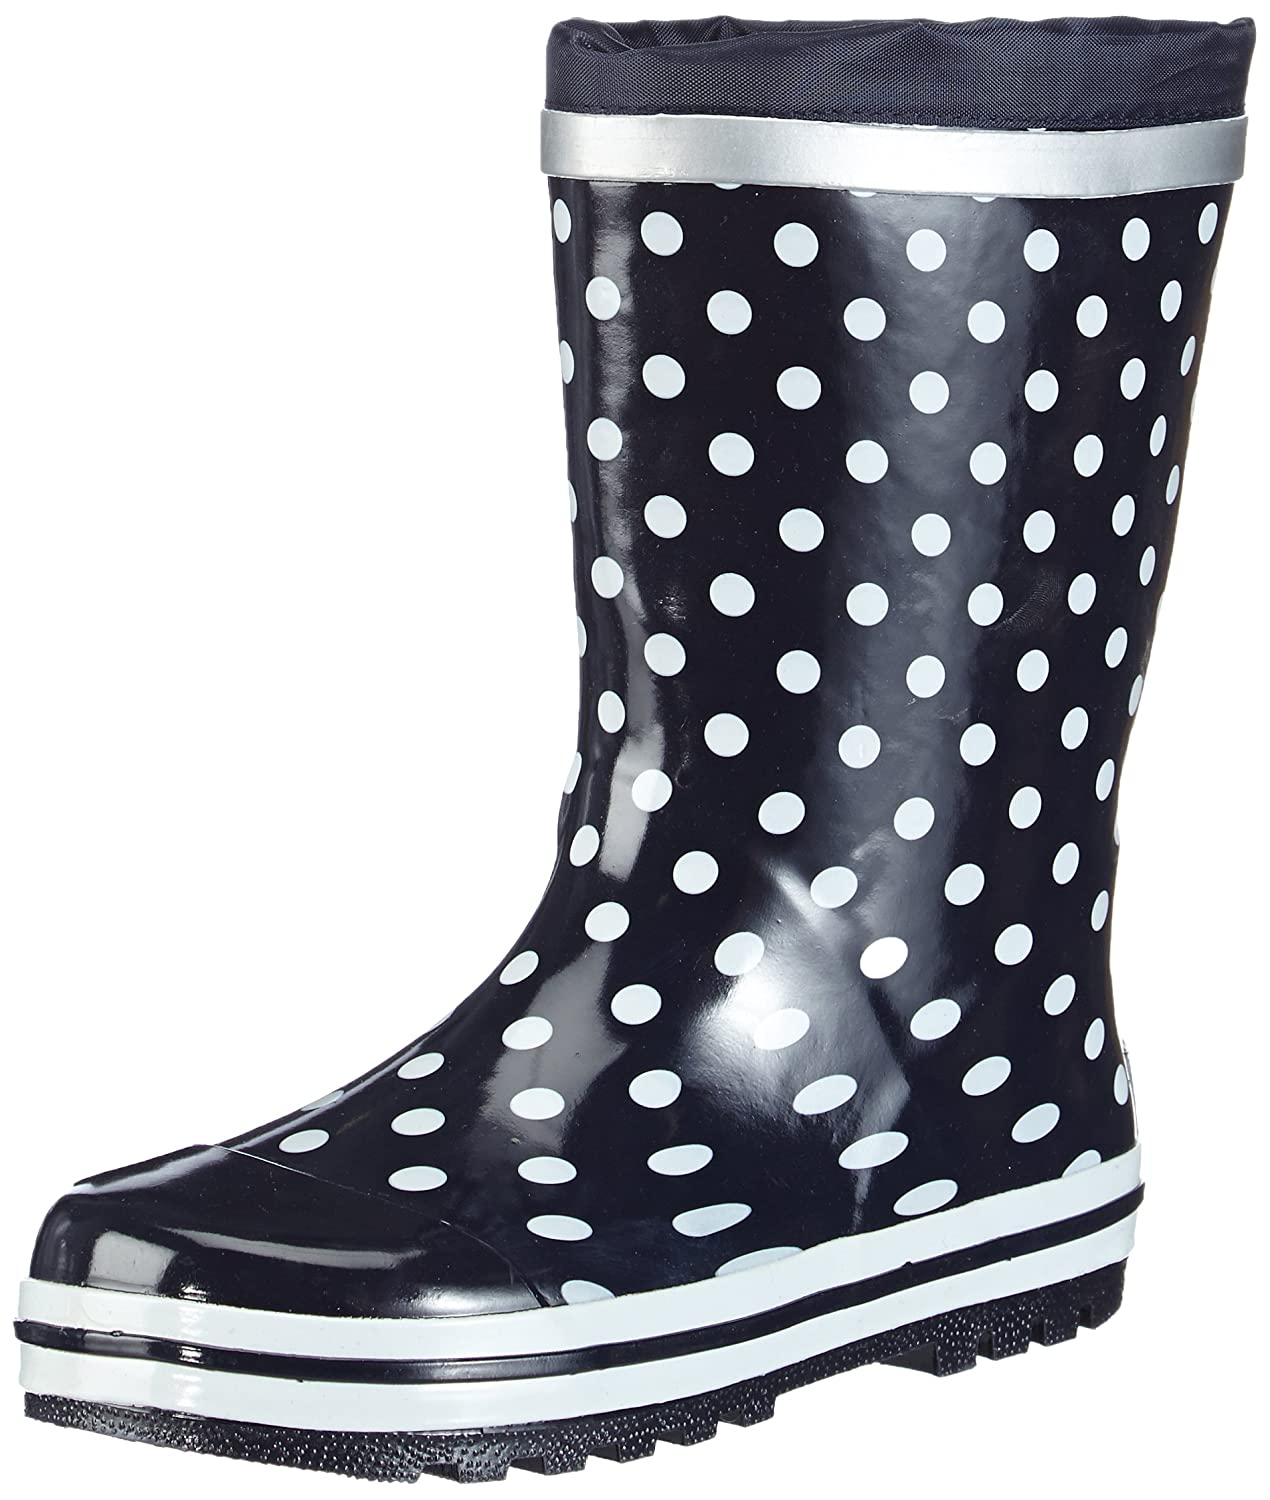 Playshoes Punkte Gummistiefel Punkte, Bottes fille Playshoes GmbH 181767